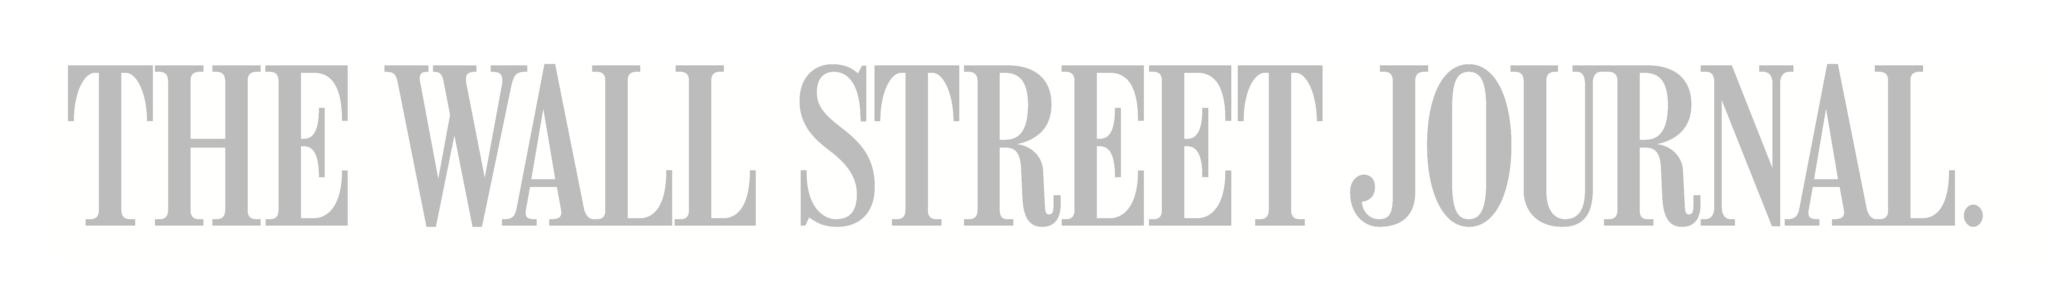 the-wall-street-journal-logo-Edited